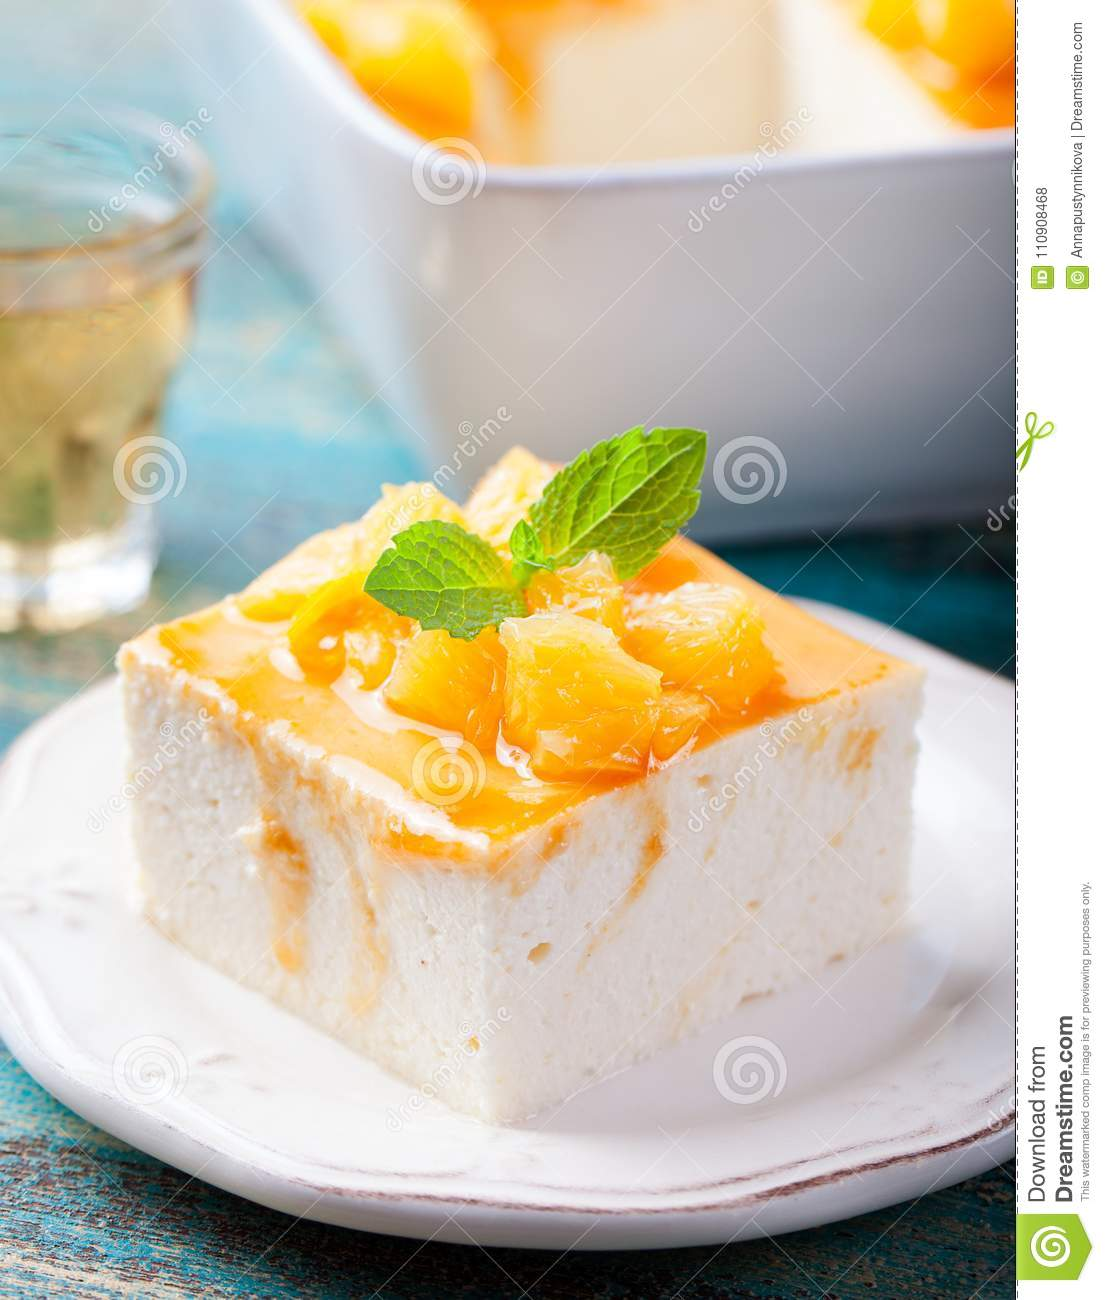 Cheesecake, Cottage Cheese Pudding Stock Photo - Image of ...